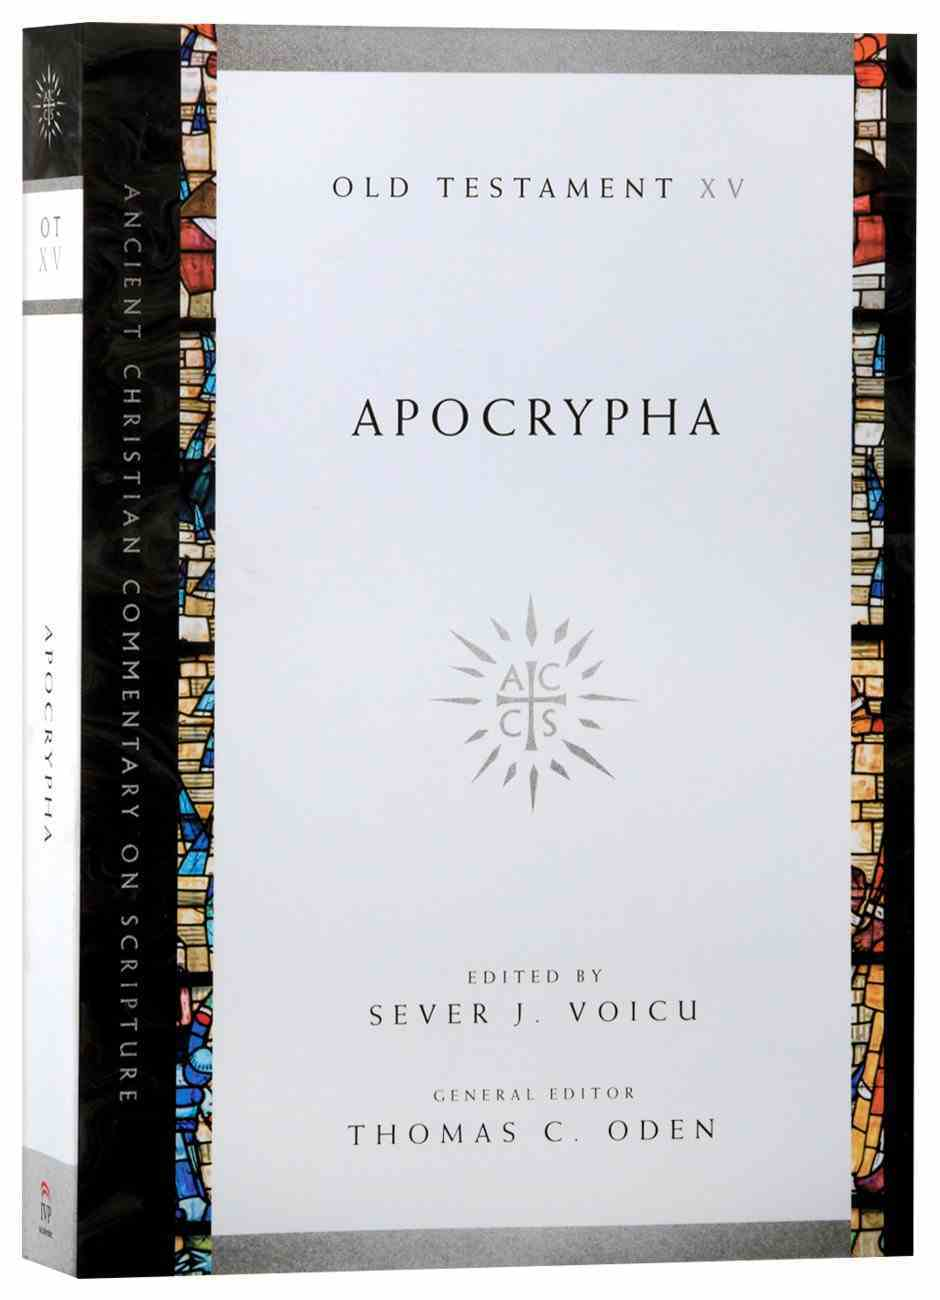 Accs: Apocrypha (Ancient Christian Commentary On Scripture: Old Testament Series) Paperback